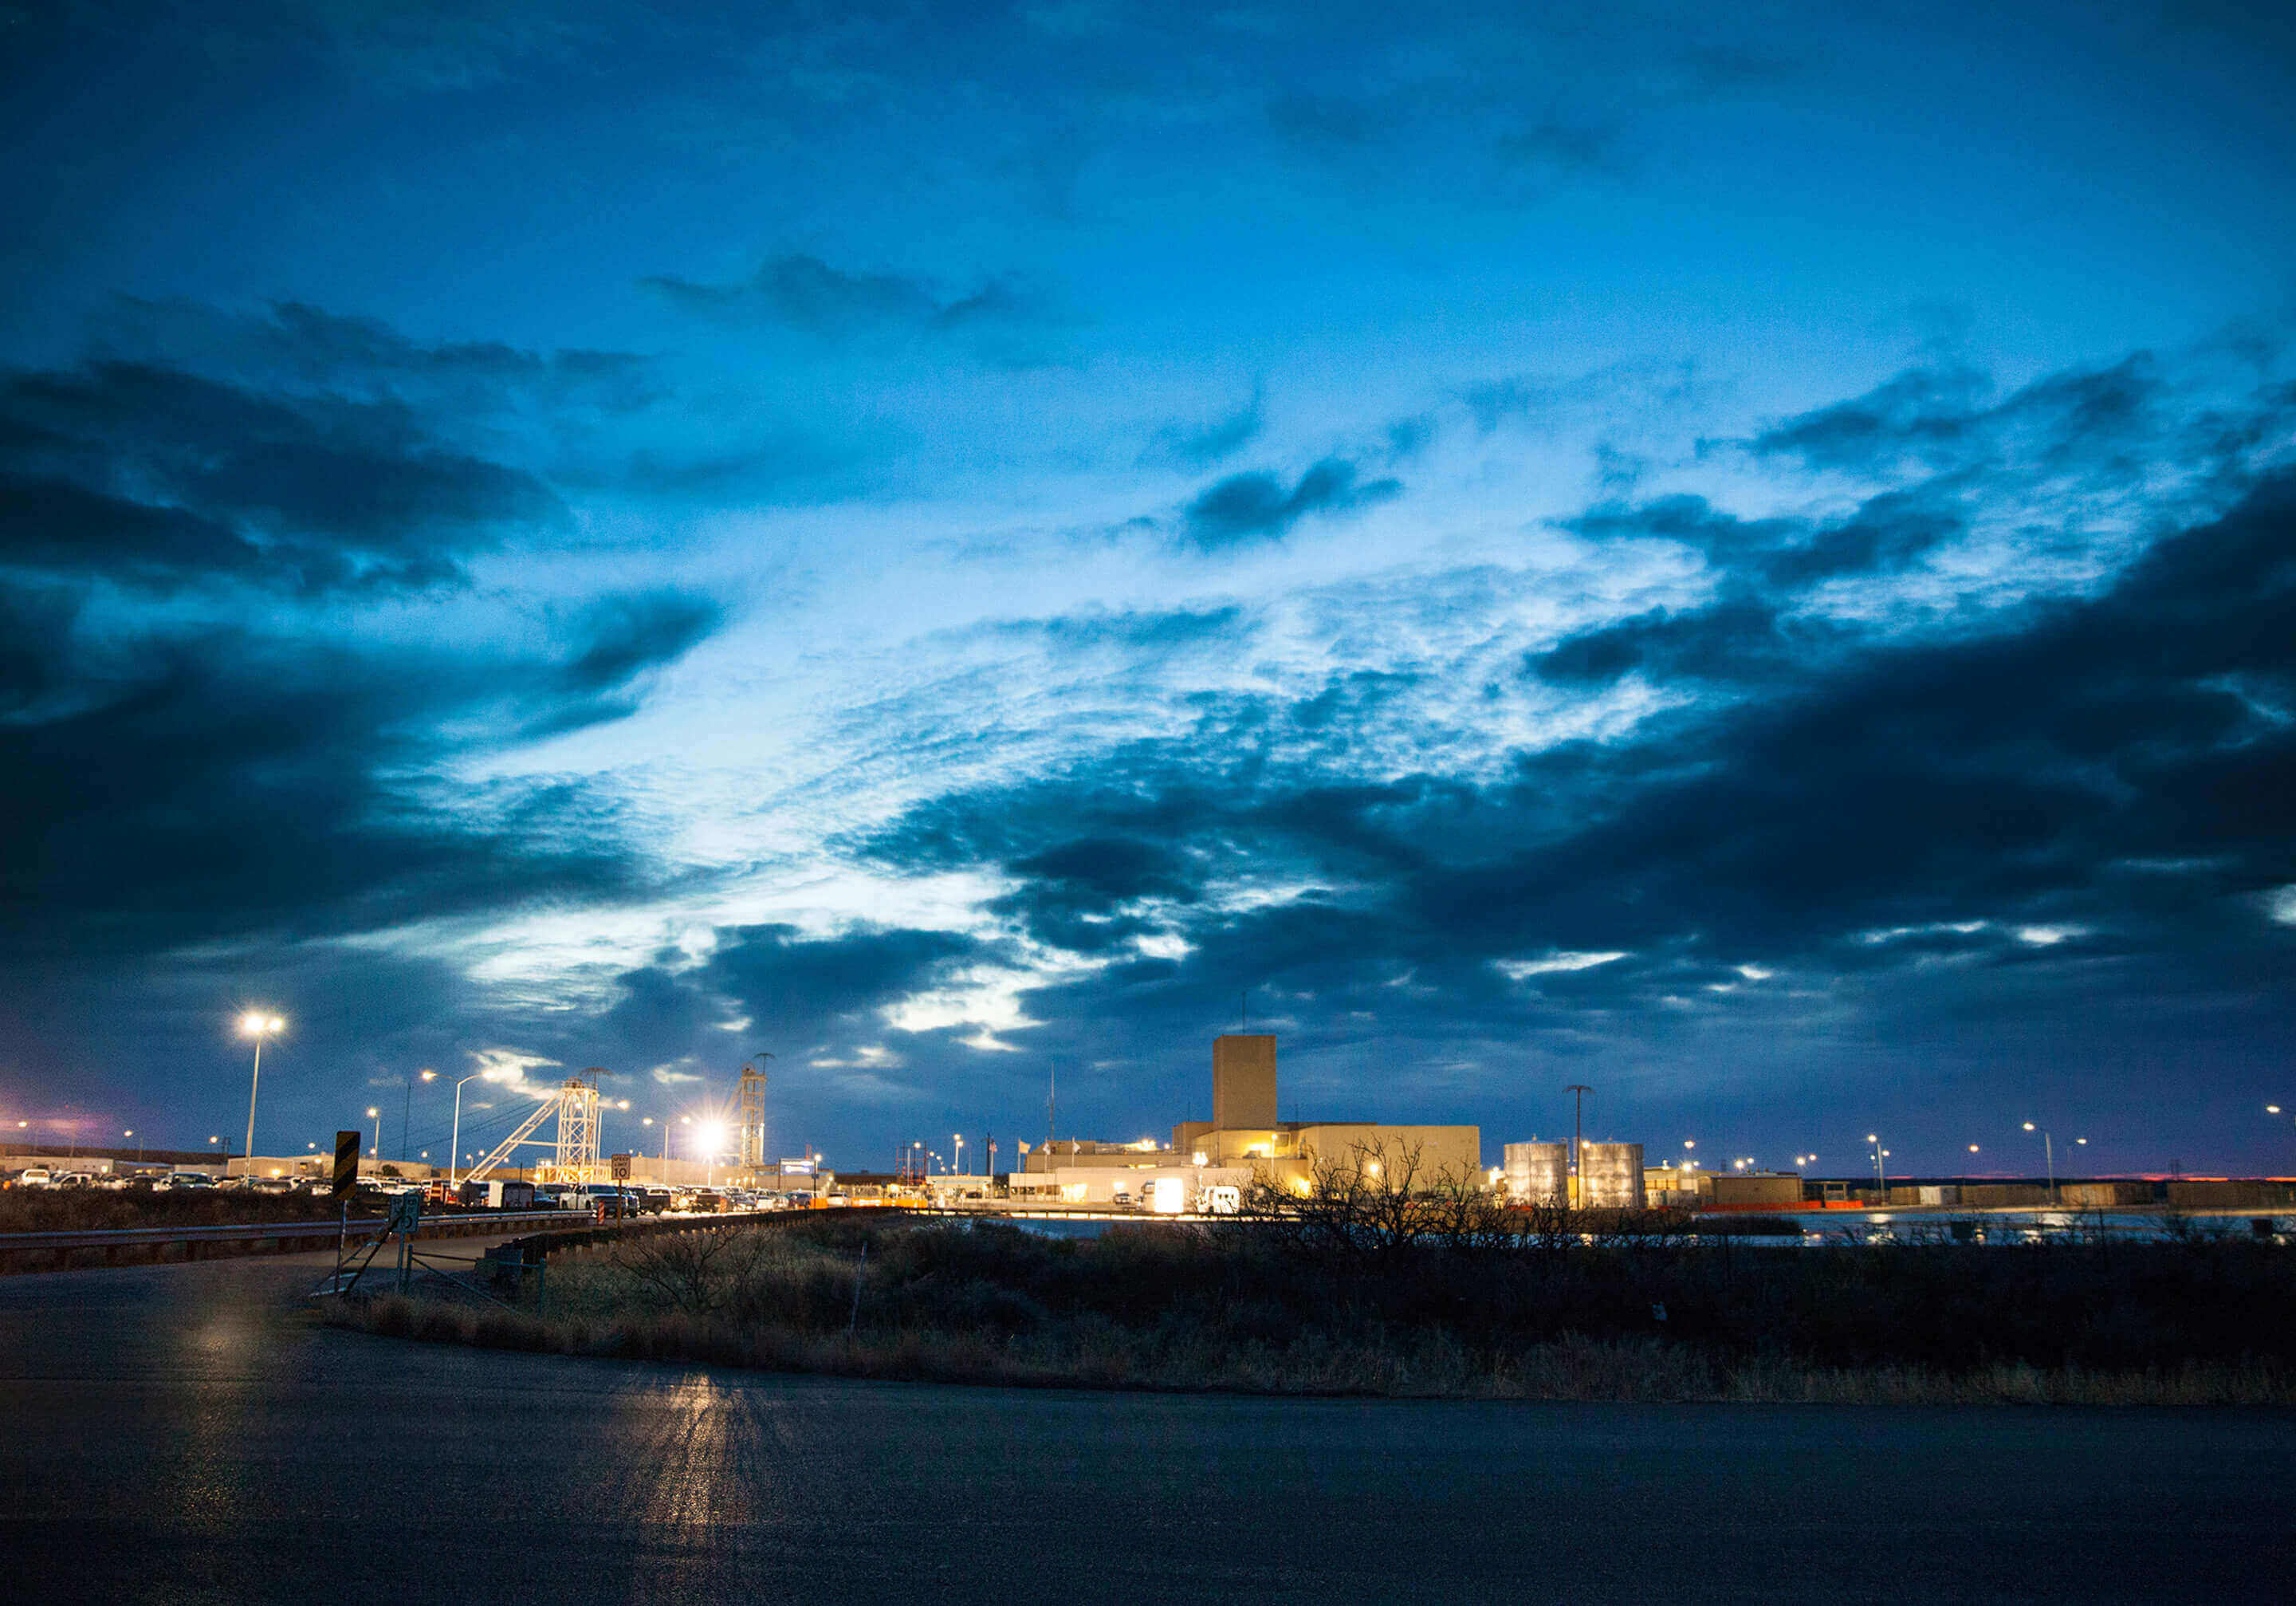 Landscape image of the Waste Isolation Pilot Plant at dusk with with dark blue clouds overhead